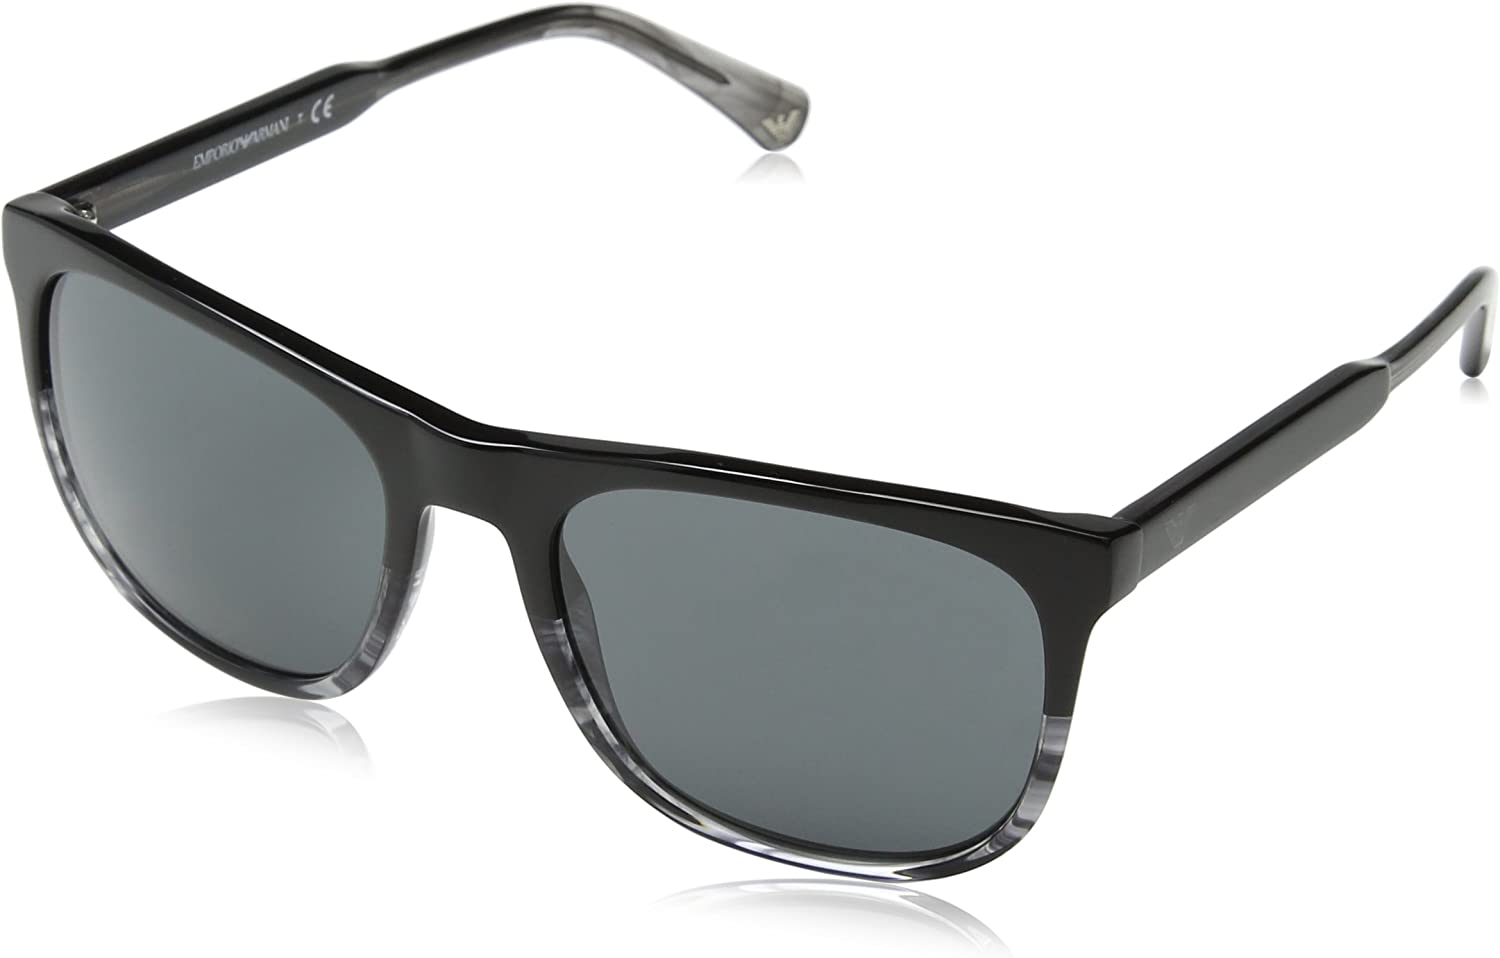 Emporio Armani EA4099 556687 Black Grey EA4099 Rectangle Sunglasses Lens Catego